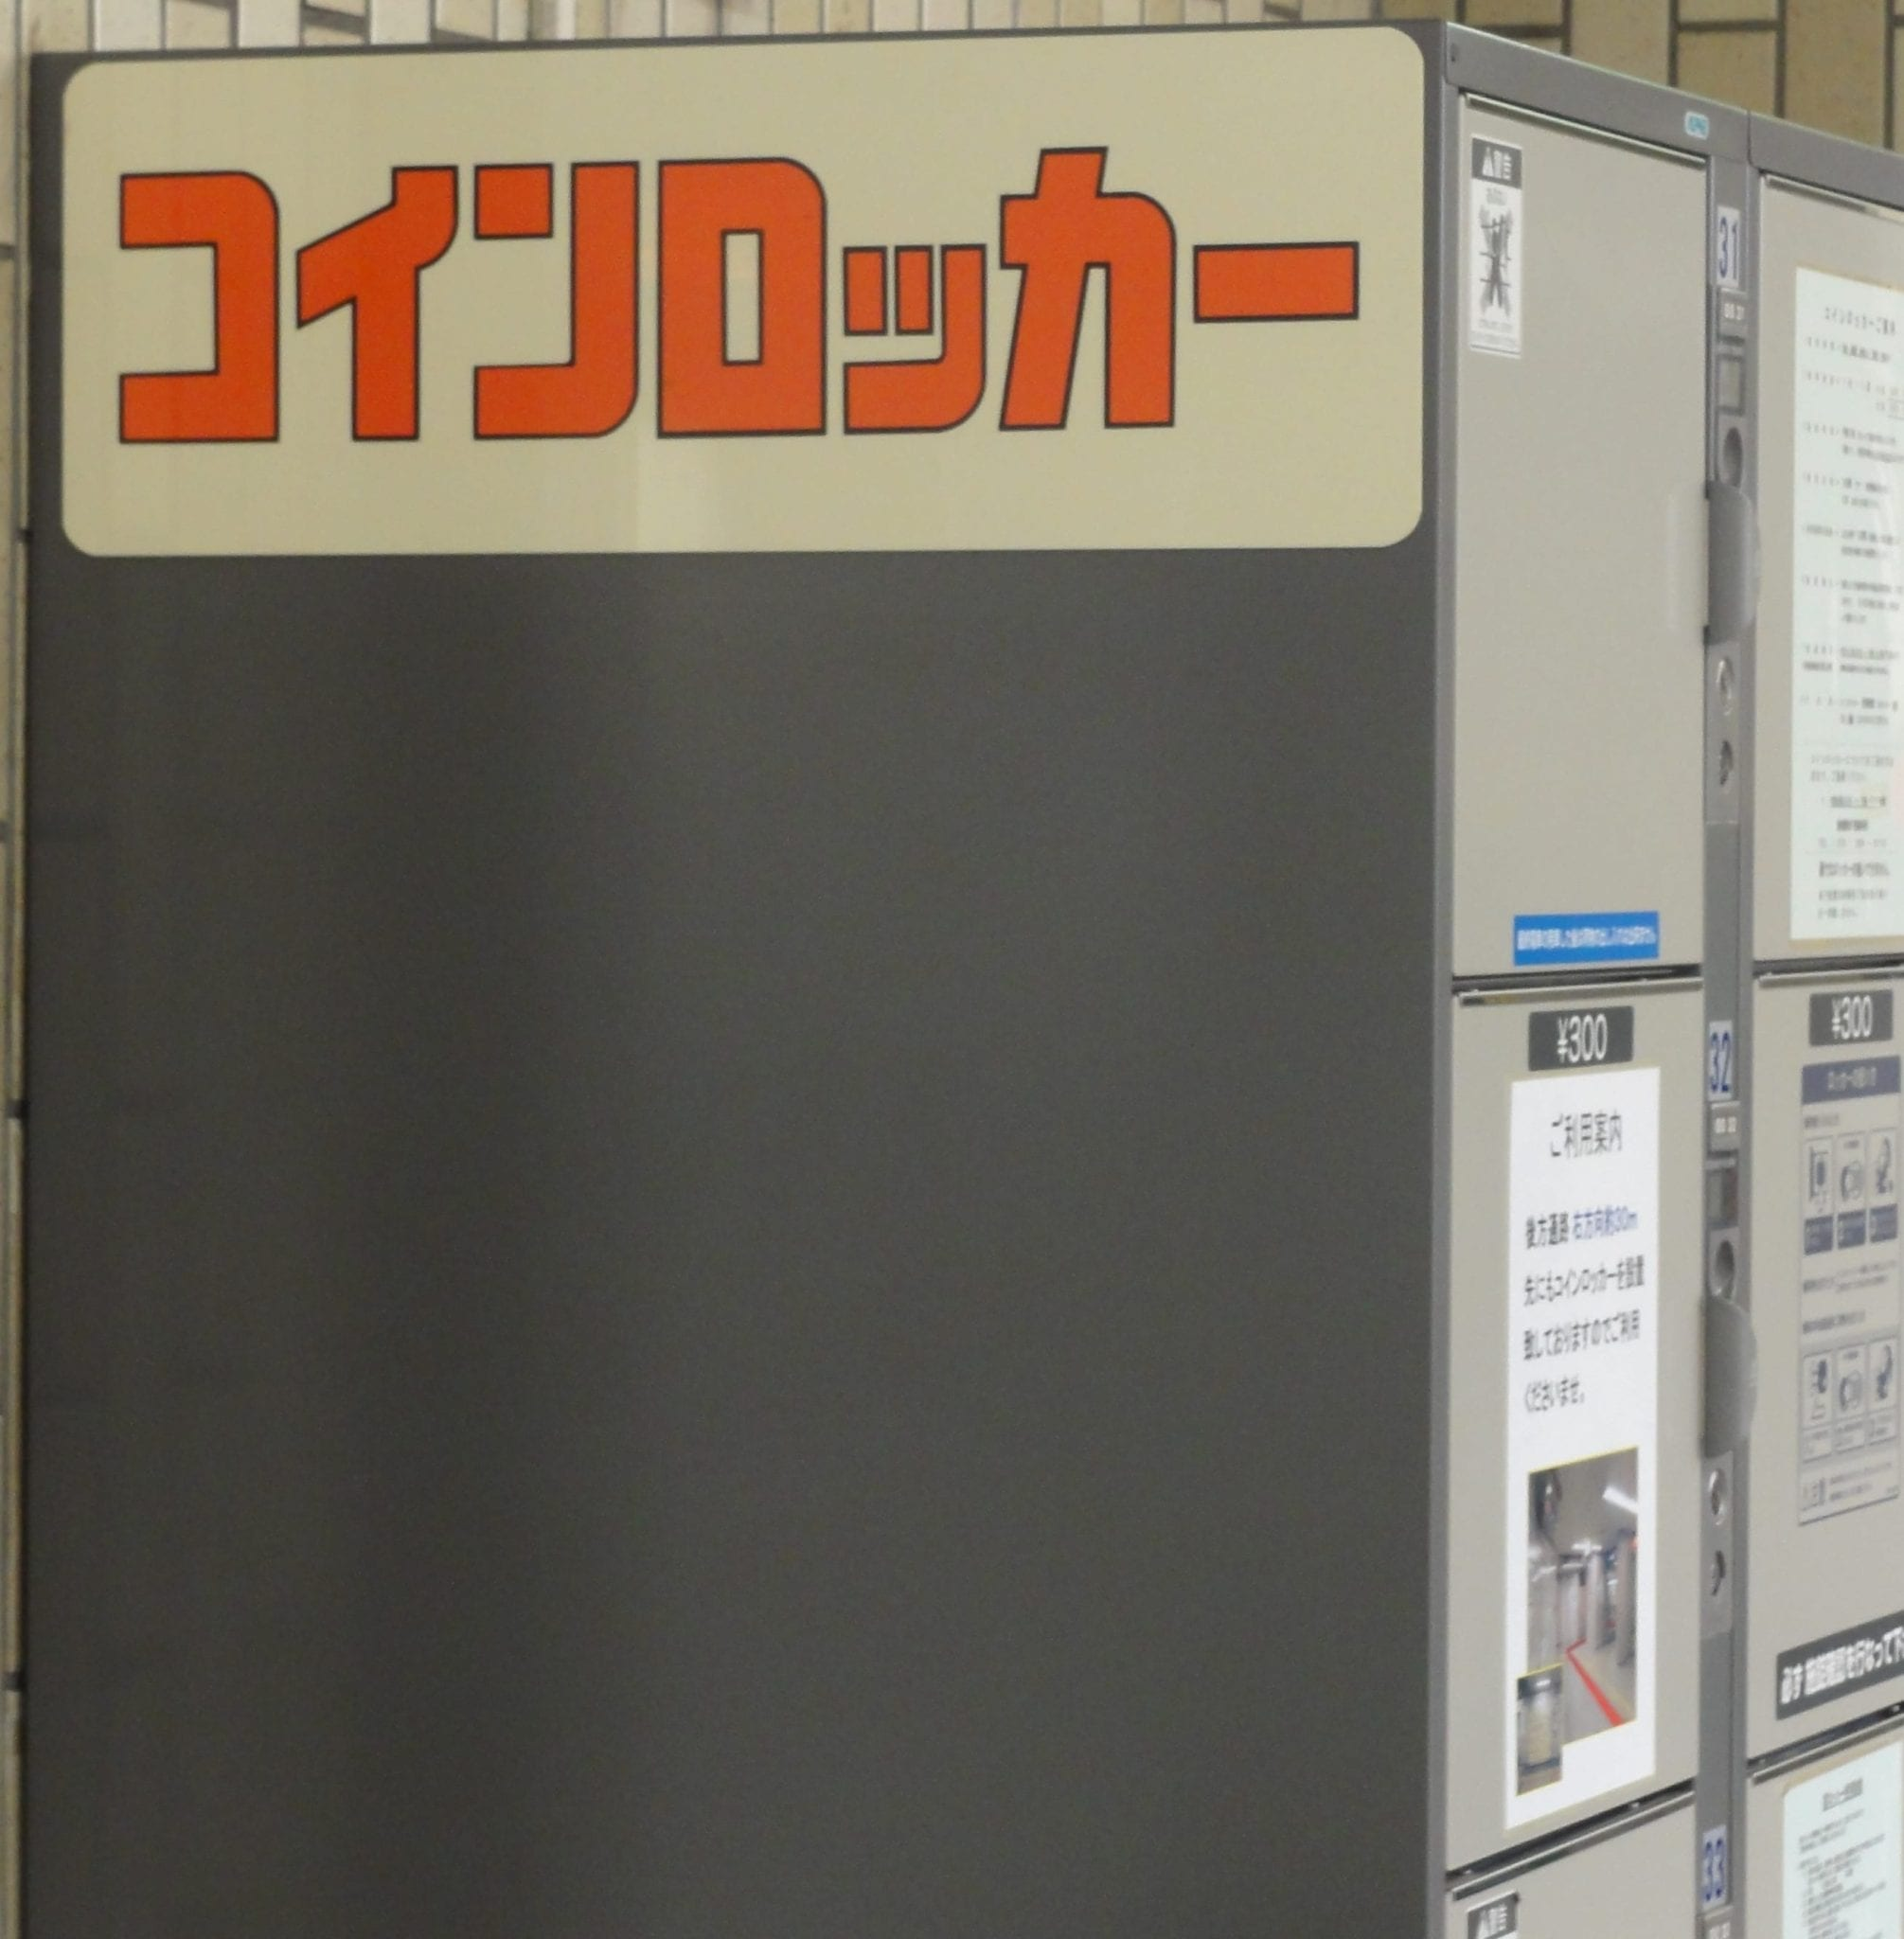 Japan train station coin locker sign in katakana Japanese alphabet